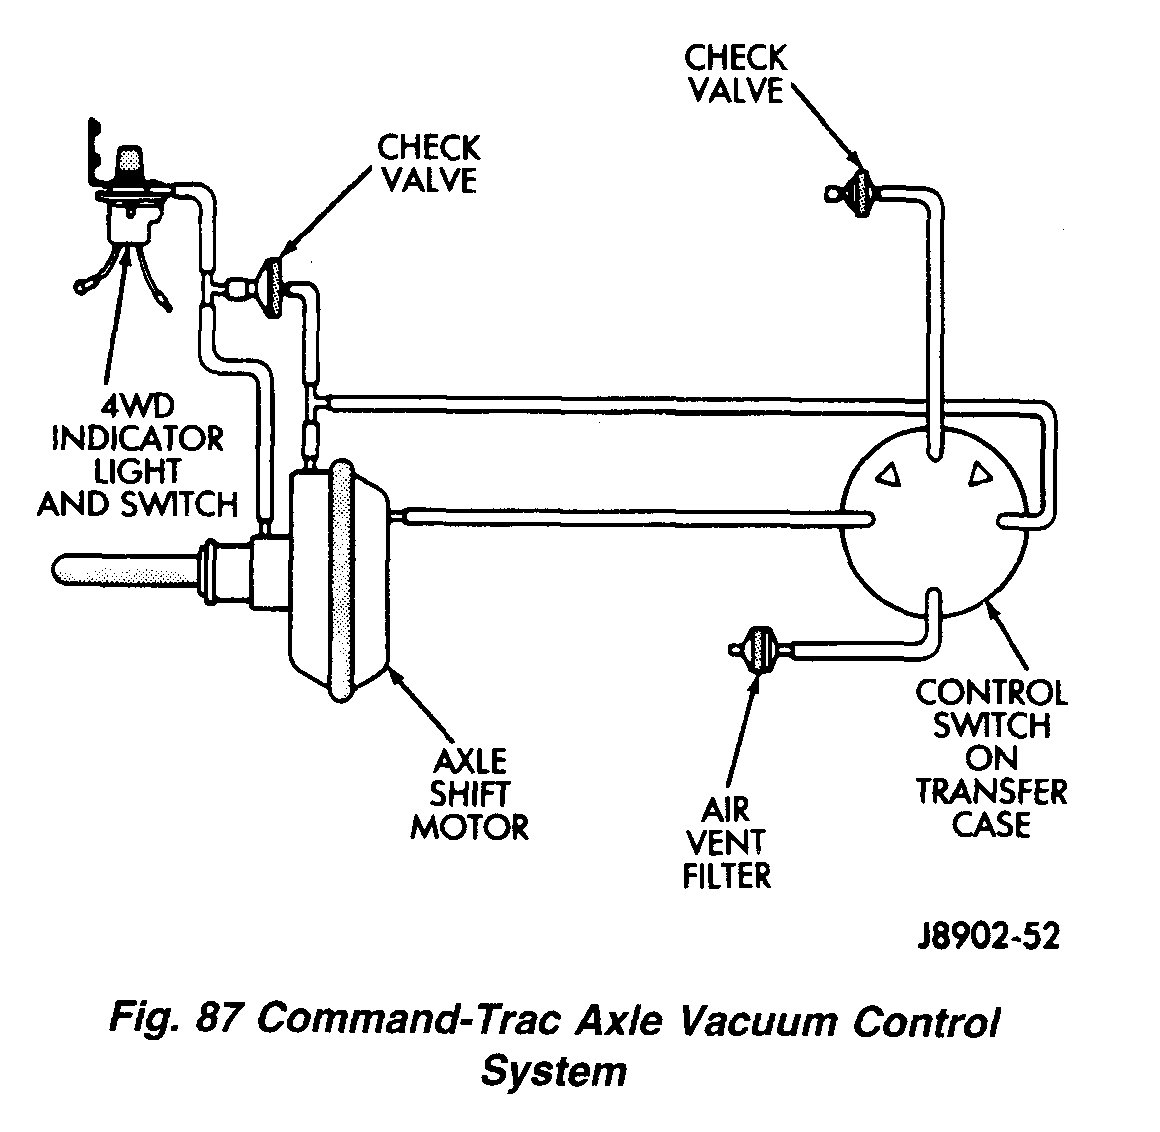 hight resolution of 1989 jeep wrangler vacuum schematic wiring diagram 1988 jeep wrangler vacuum diagram wiring diagram option